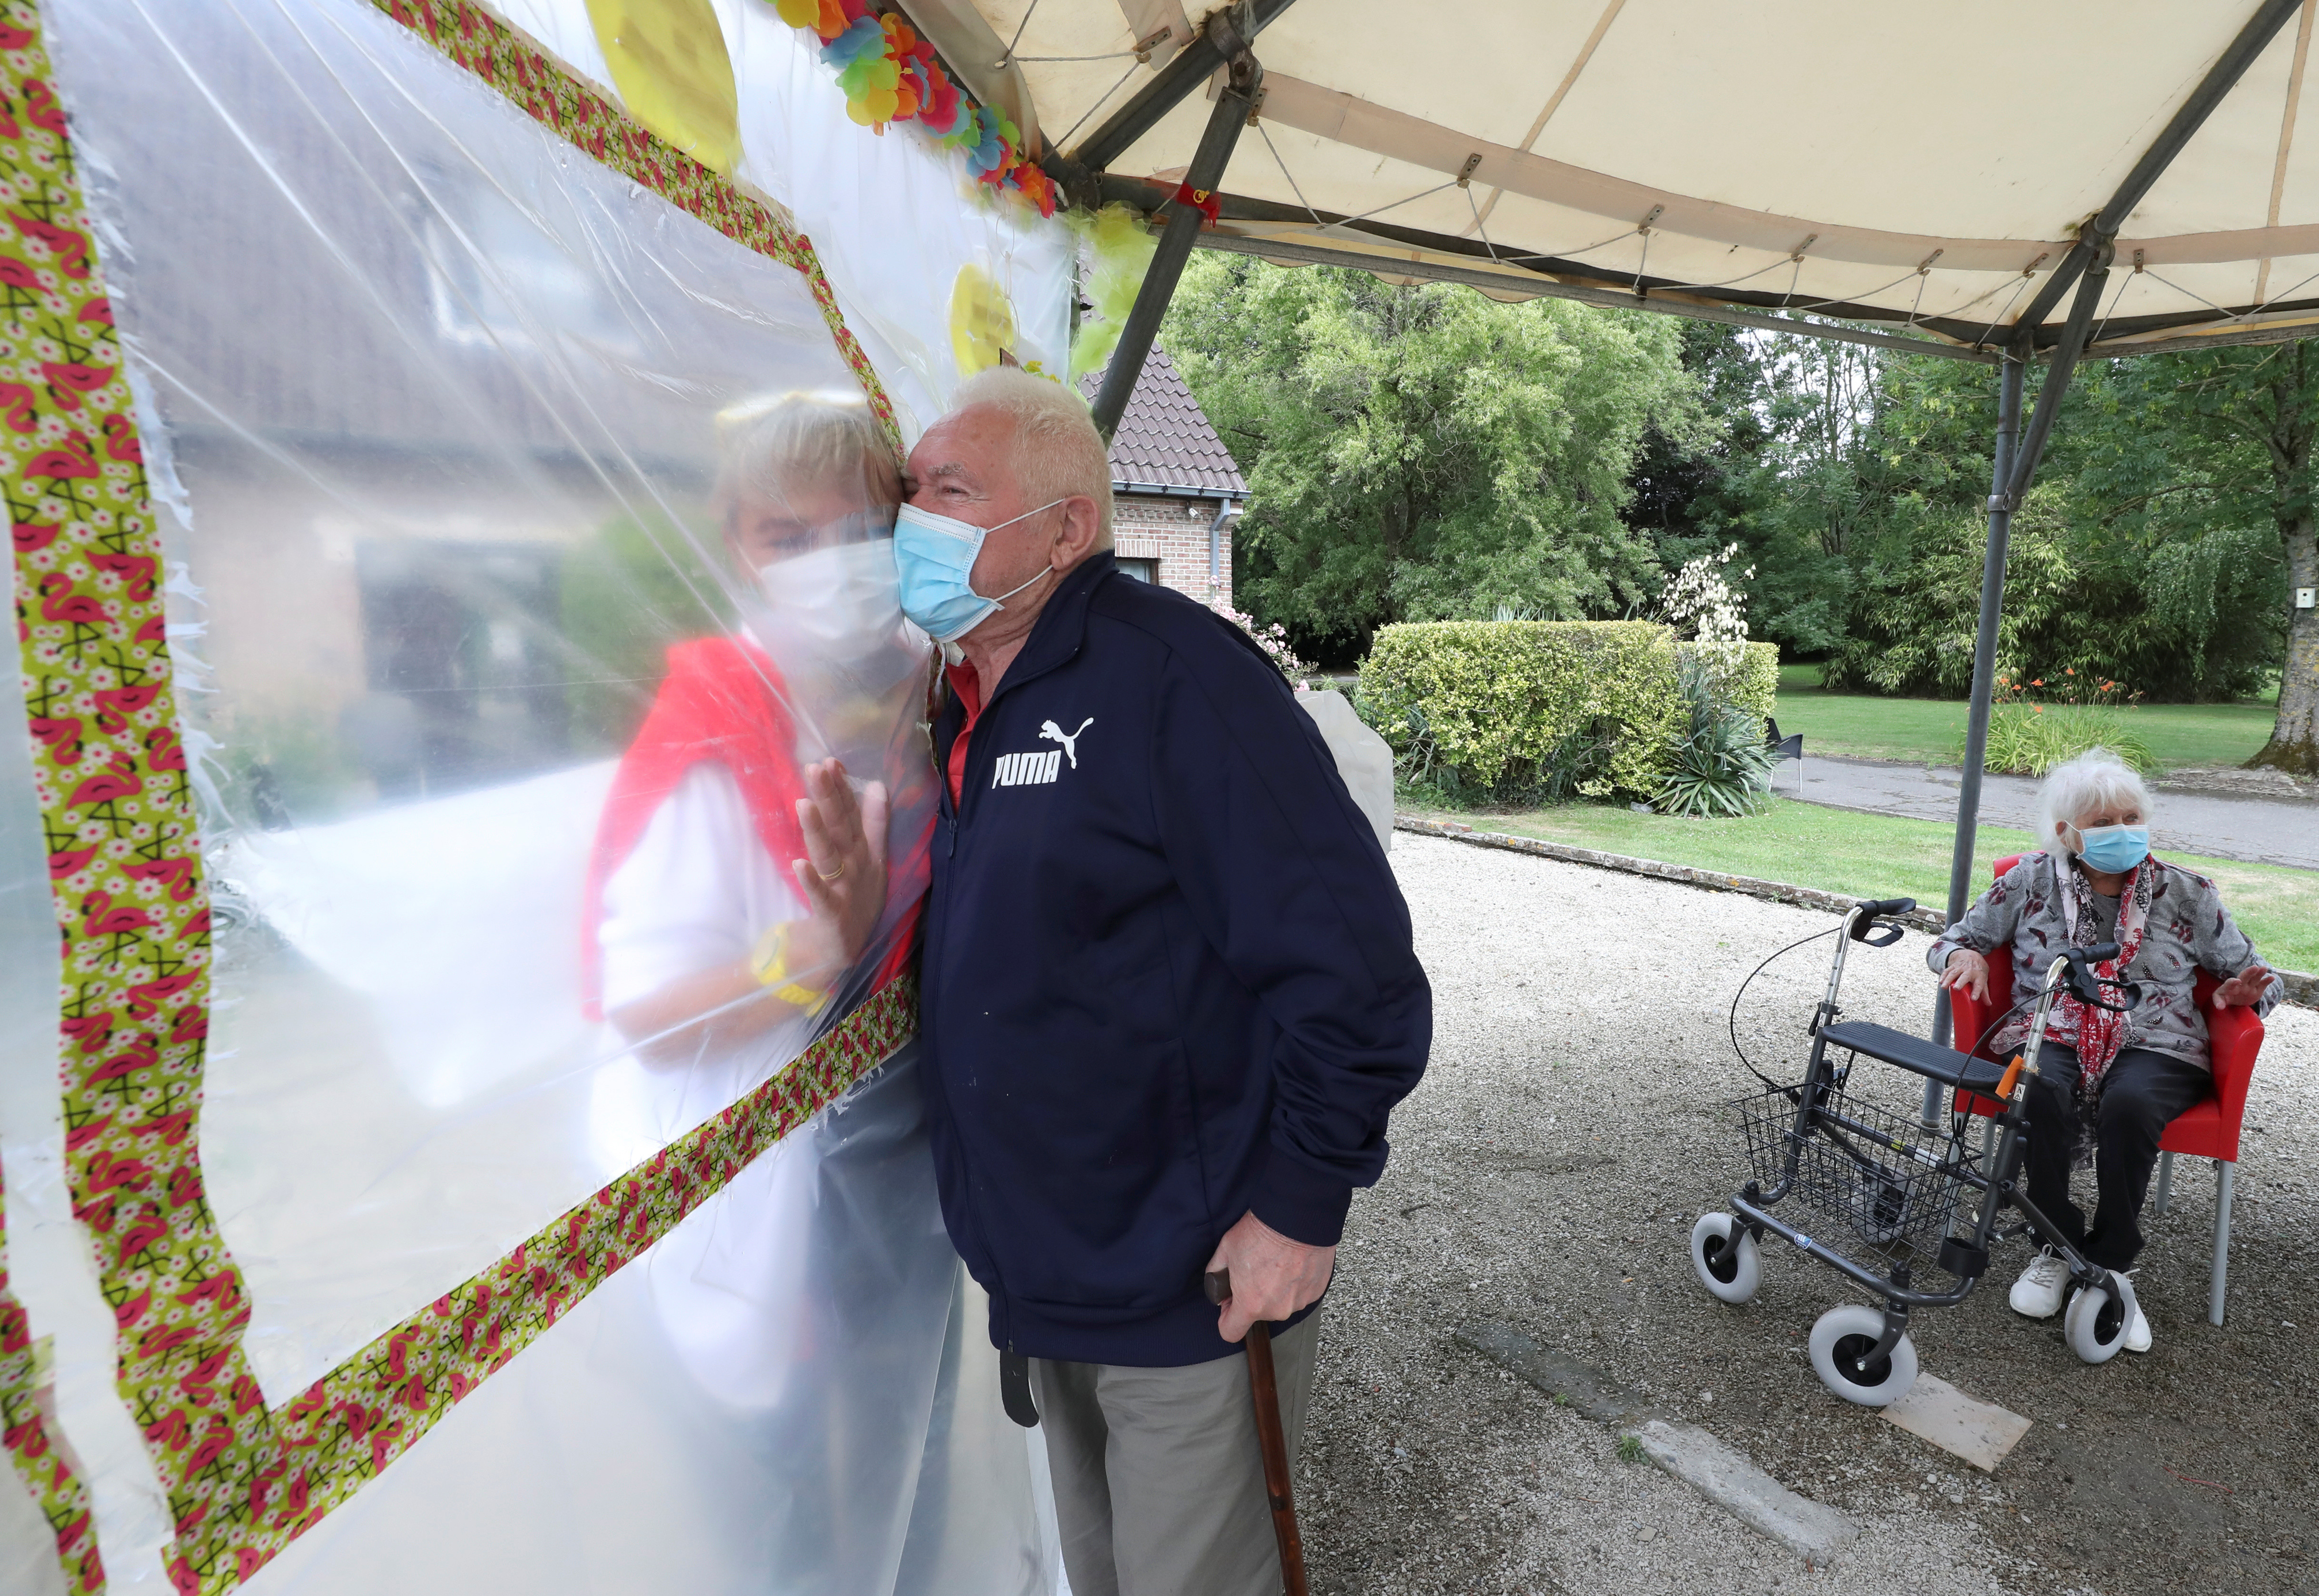 """Albert Letellier, 86, a resident at Belgian nursing home  """"Le Jardin de Picardie""""  enjoy hugs and cuddles with Marie-Christine Desoer, the director of the residence, through a wall made with plastic sheets to protect against potential coronavirus disease (COVID-19) infection, in Peruwelz, Belgium July 1, 2020. Picture taken July 1, 2020. REUTERS/Yves Herman - RC2ZKH9SWL2M"""